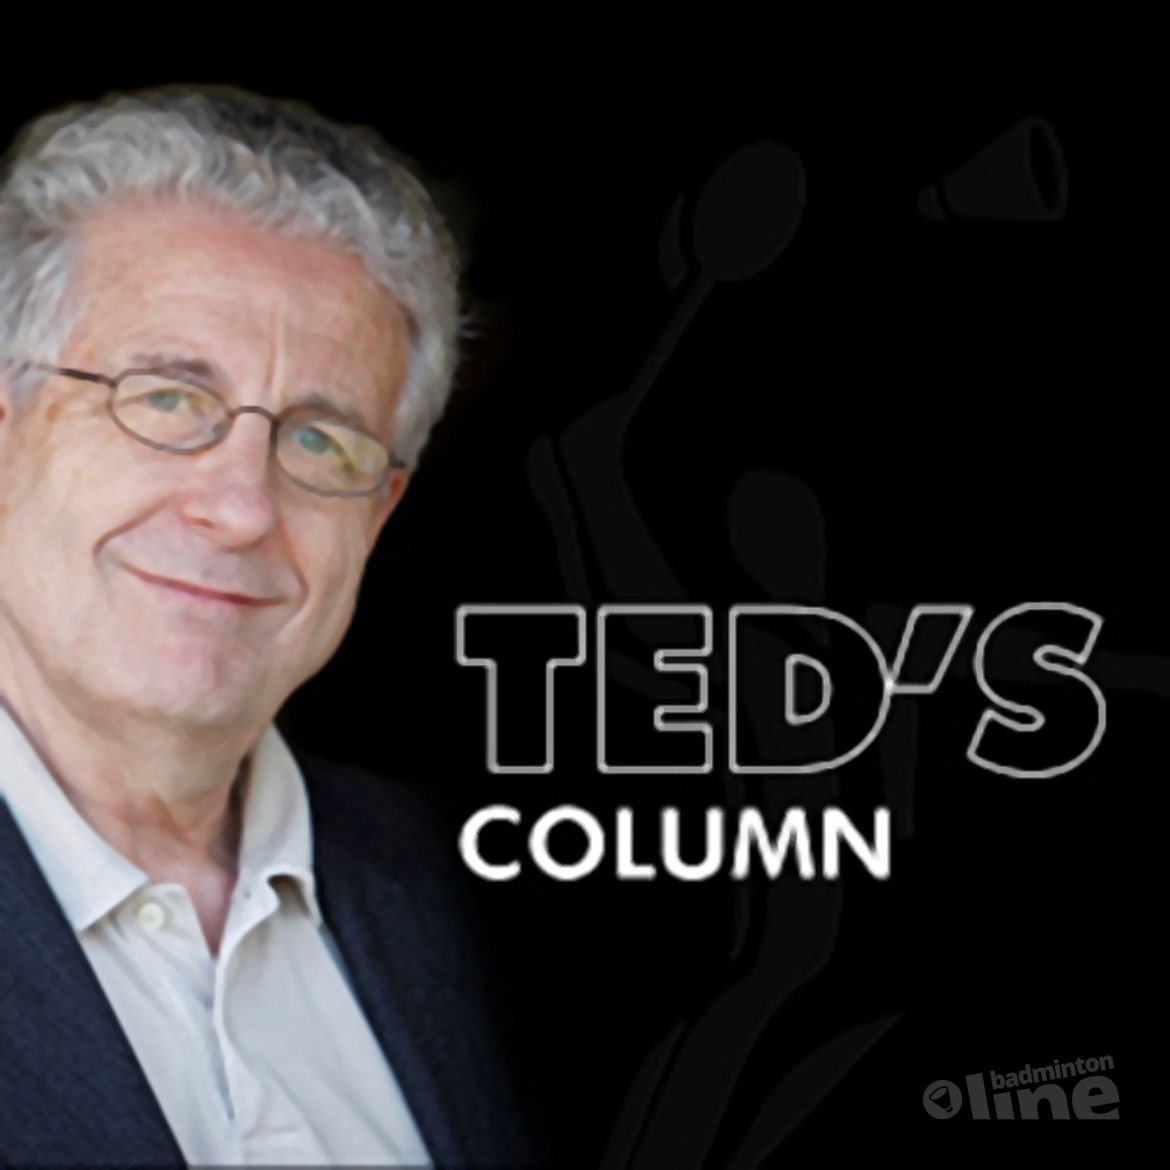 Ted's Column (week 41)